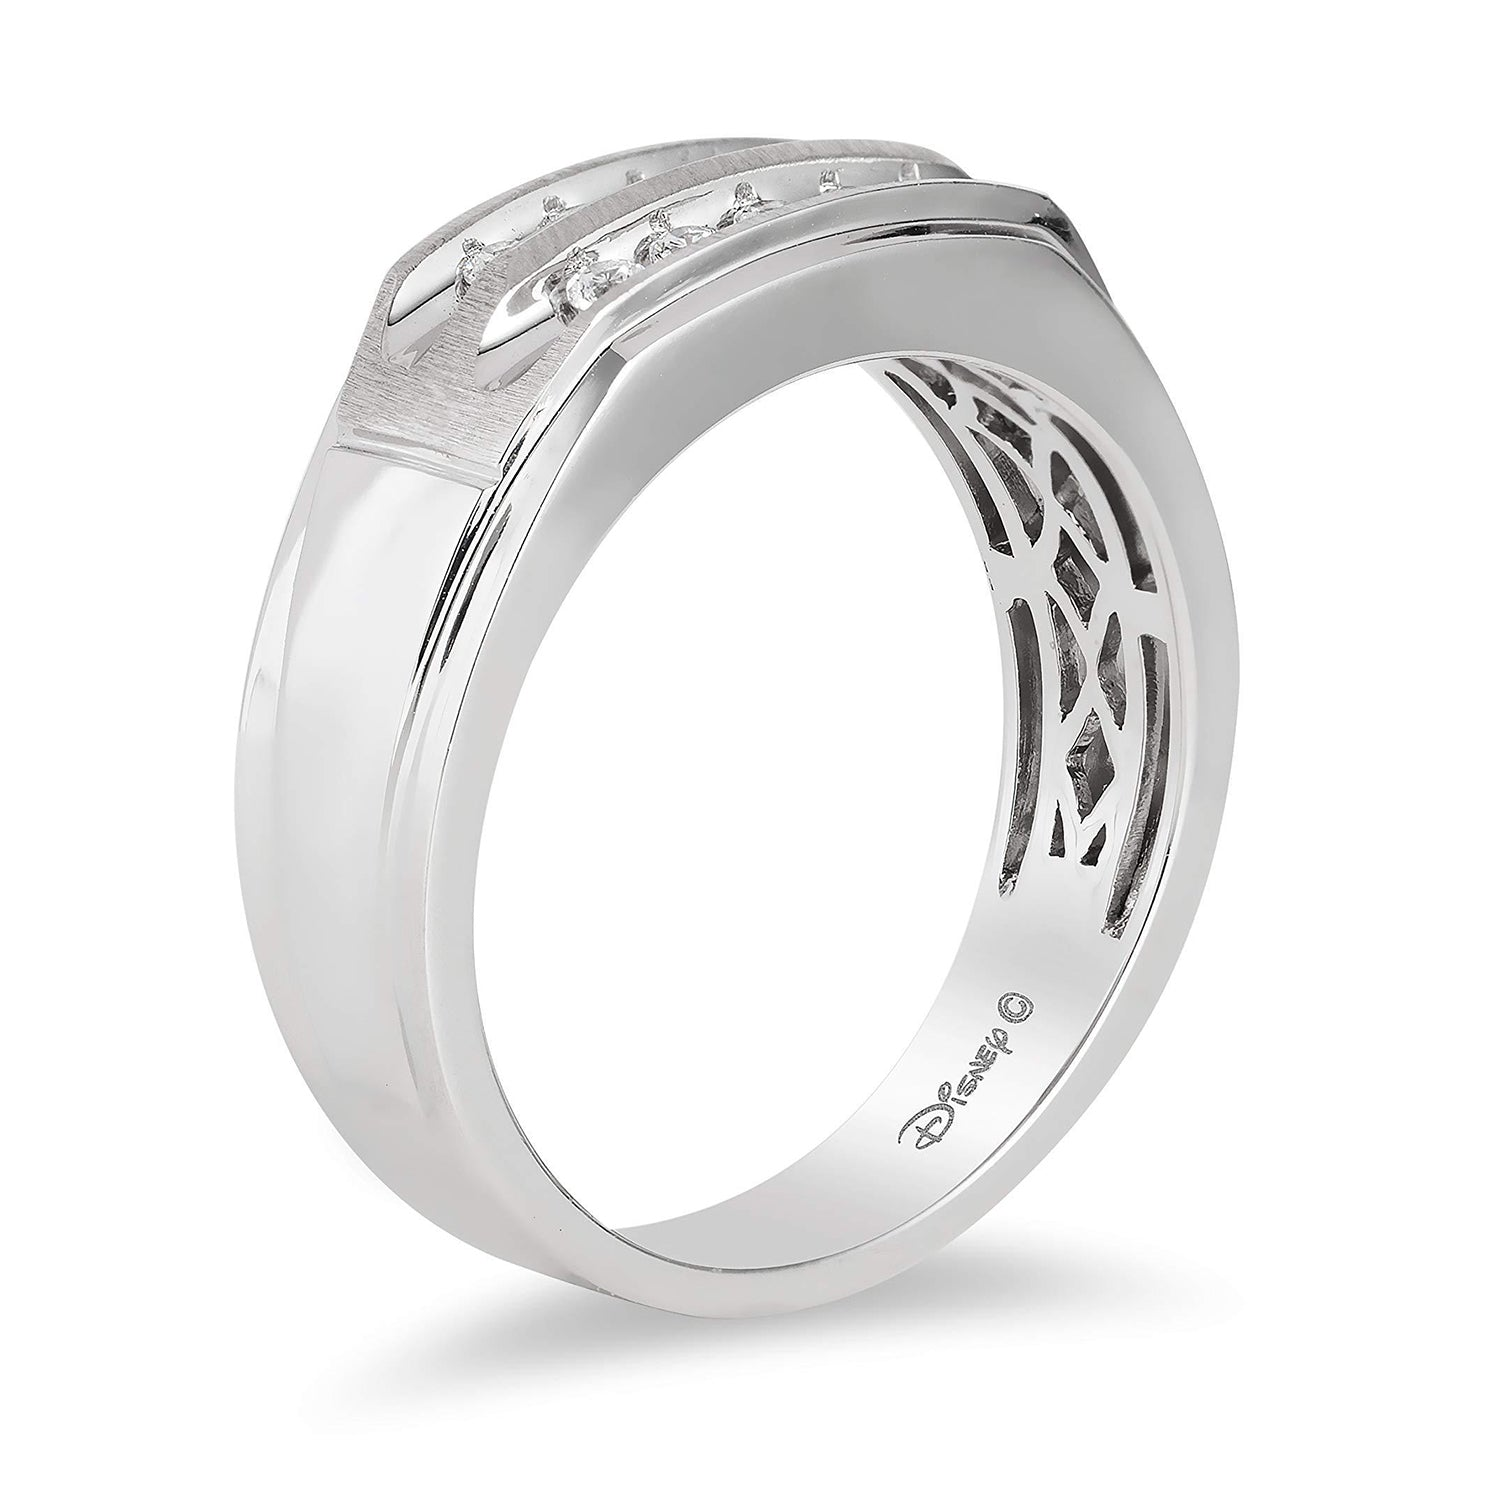 enchanted_disney-prince_fine_jewelry_14k_white_gold_1_4_cttw_mens_ring-14k_white_gold_1/4CTTW_2